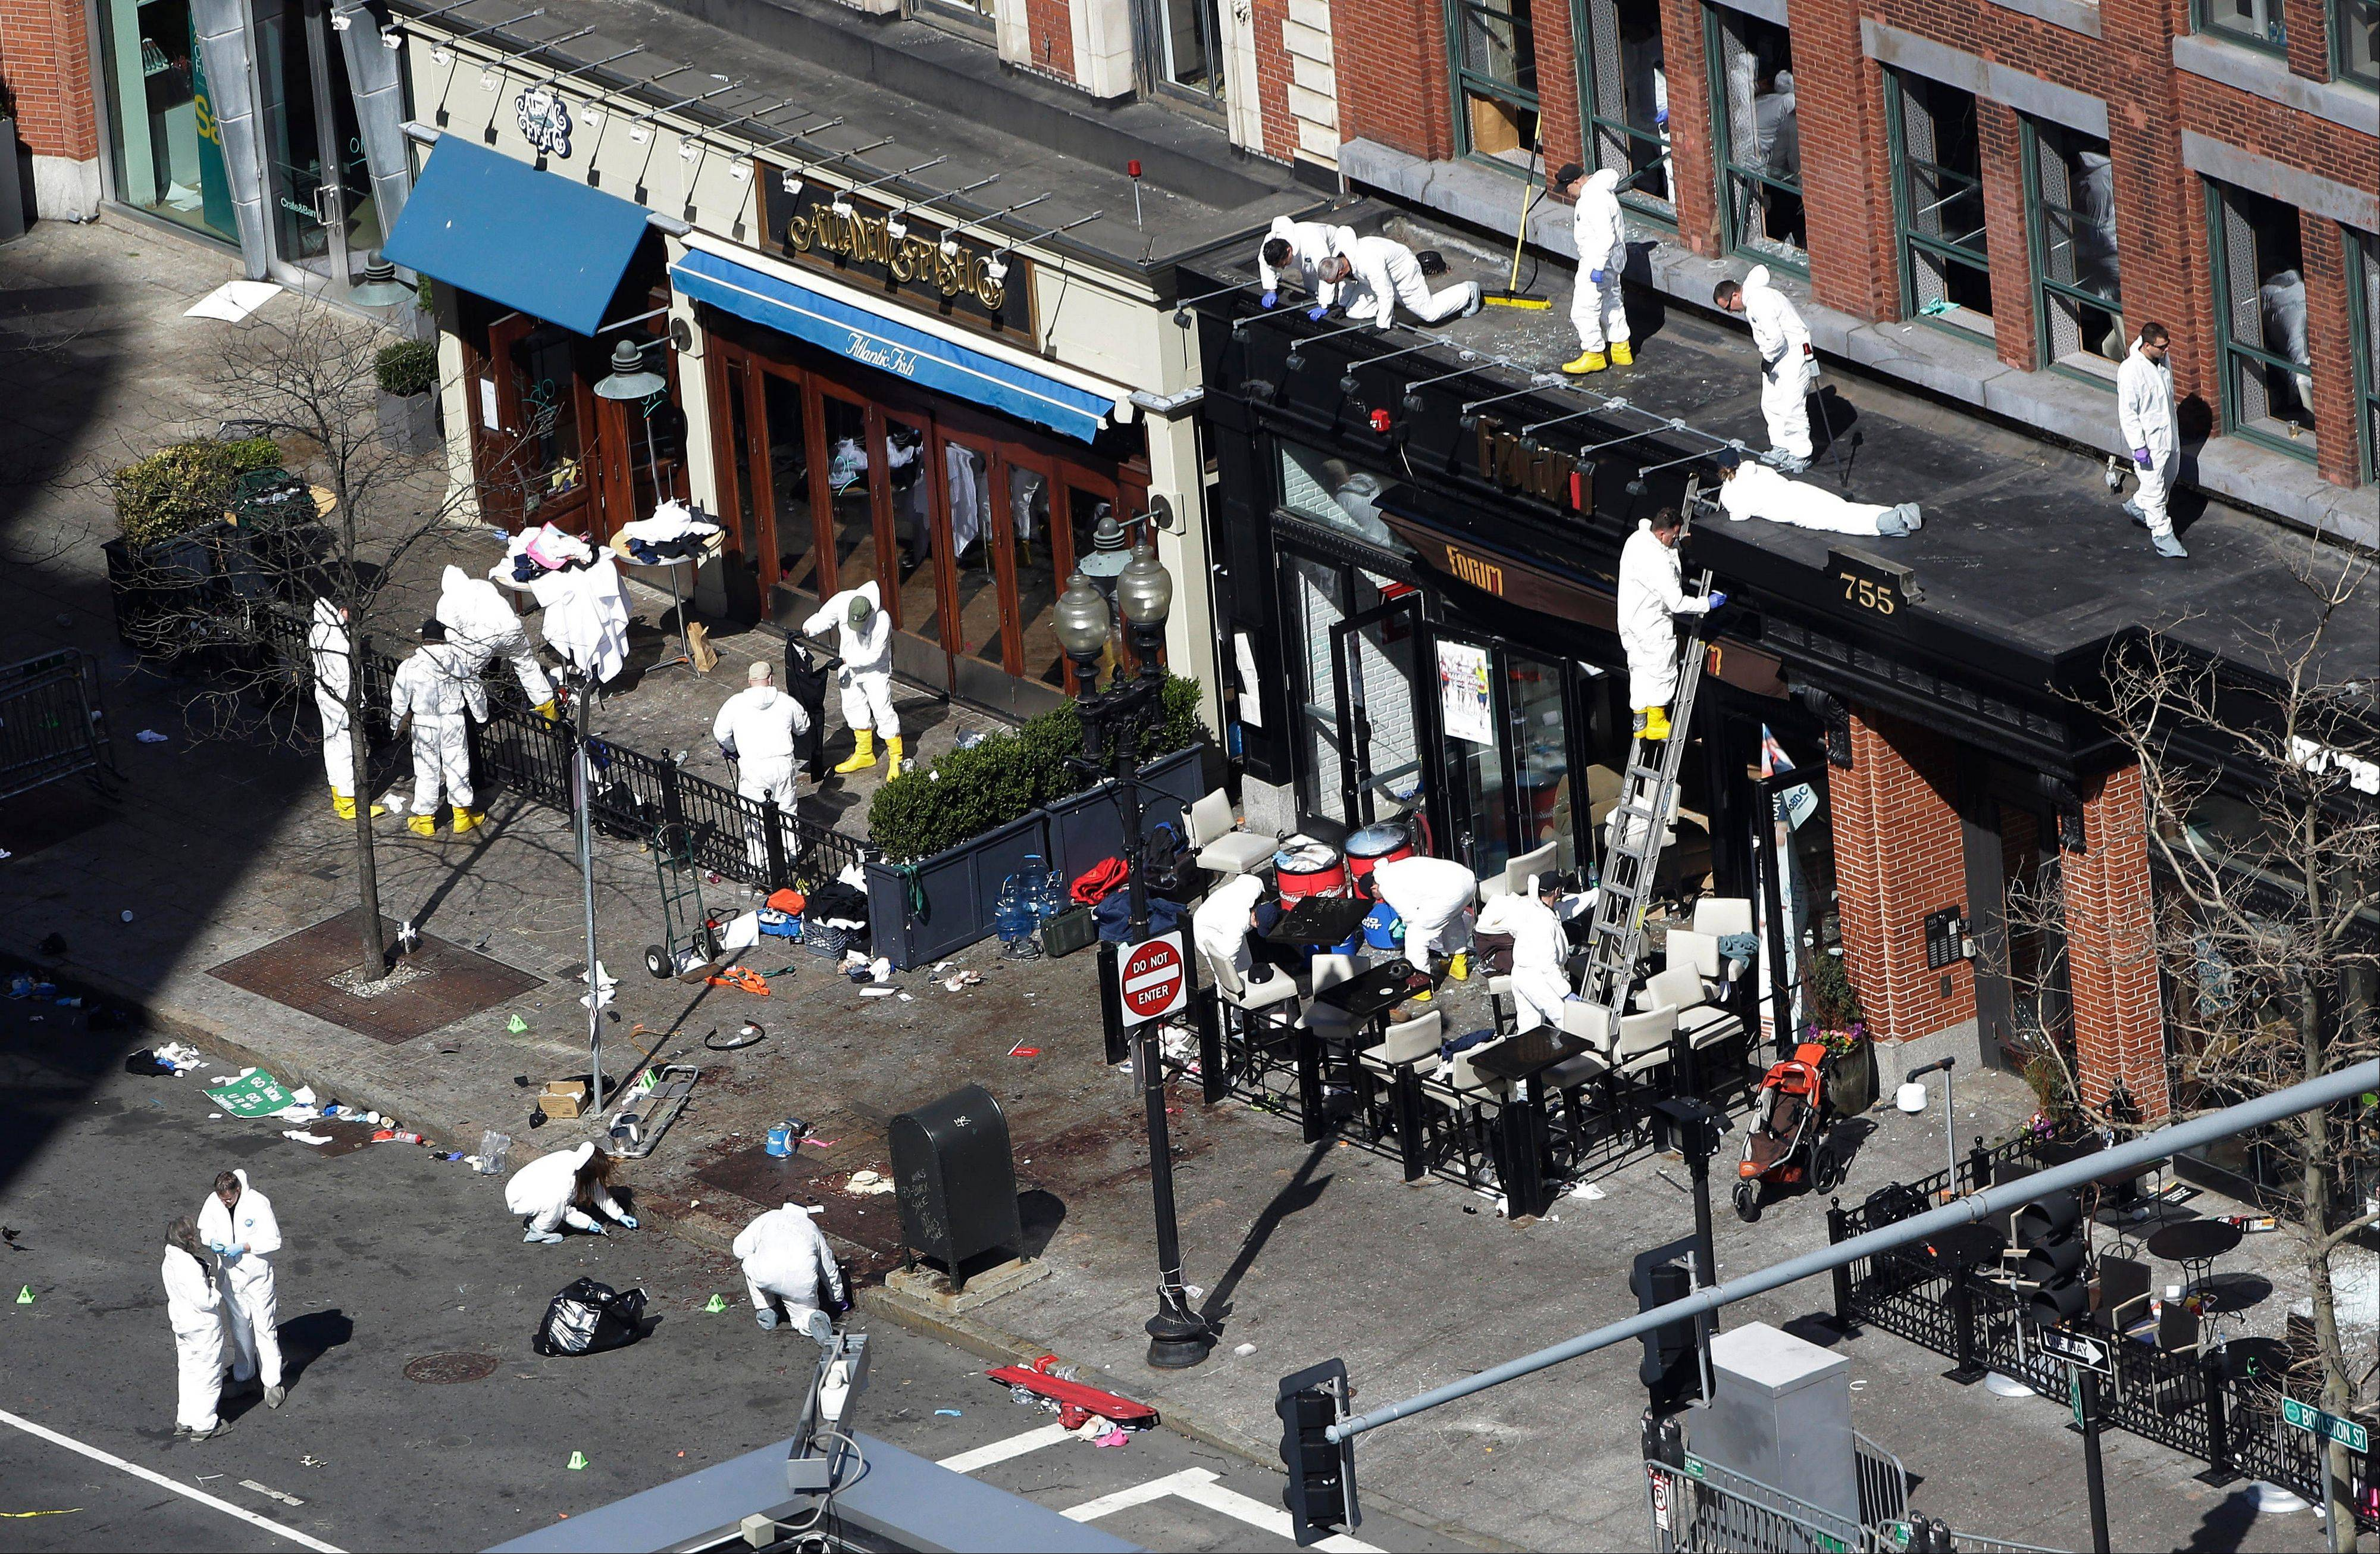 Investigators comb through the scene of one of the blast sites of the Boston Marathon on Wednesday, two days after the explosions.